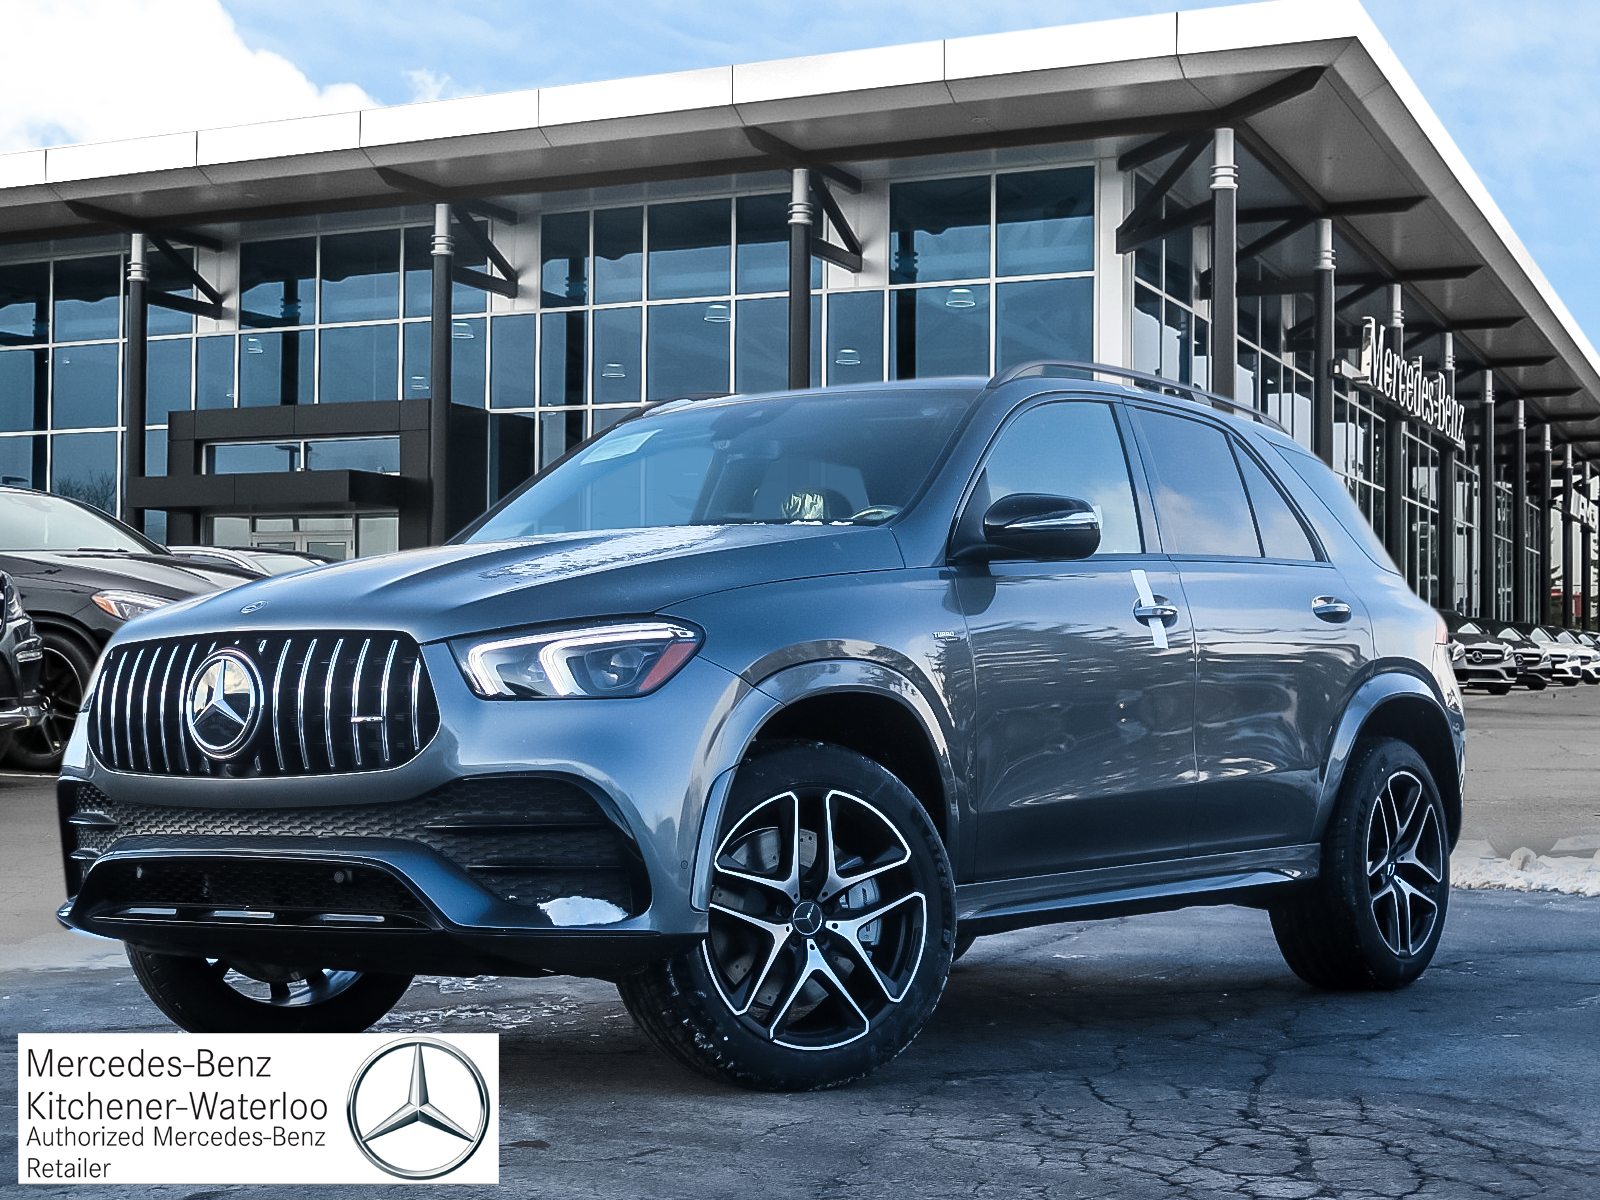 New 2020 Mercedes-Benz GLE53 4MATIC+ SUV